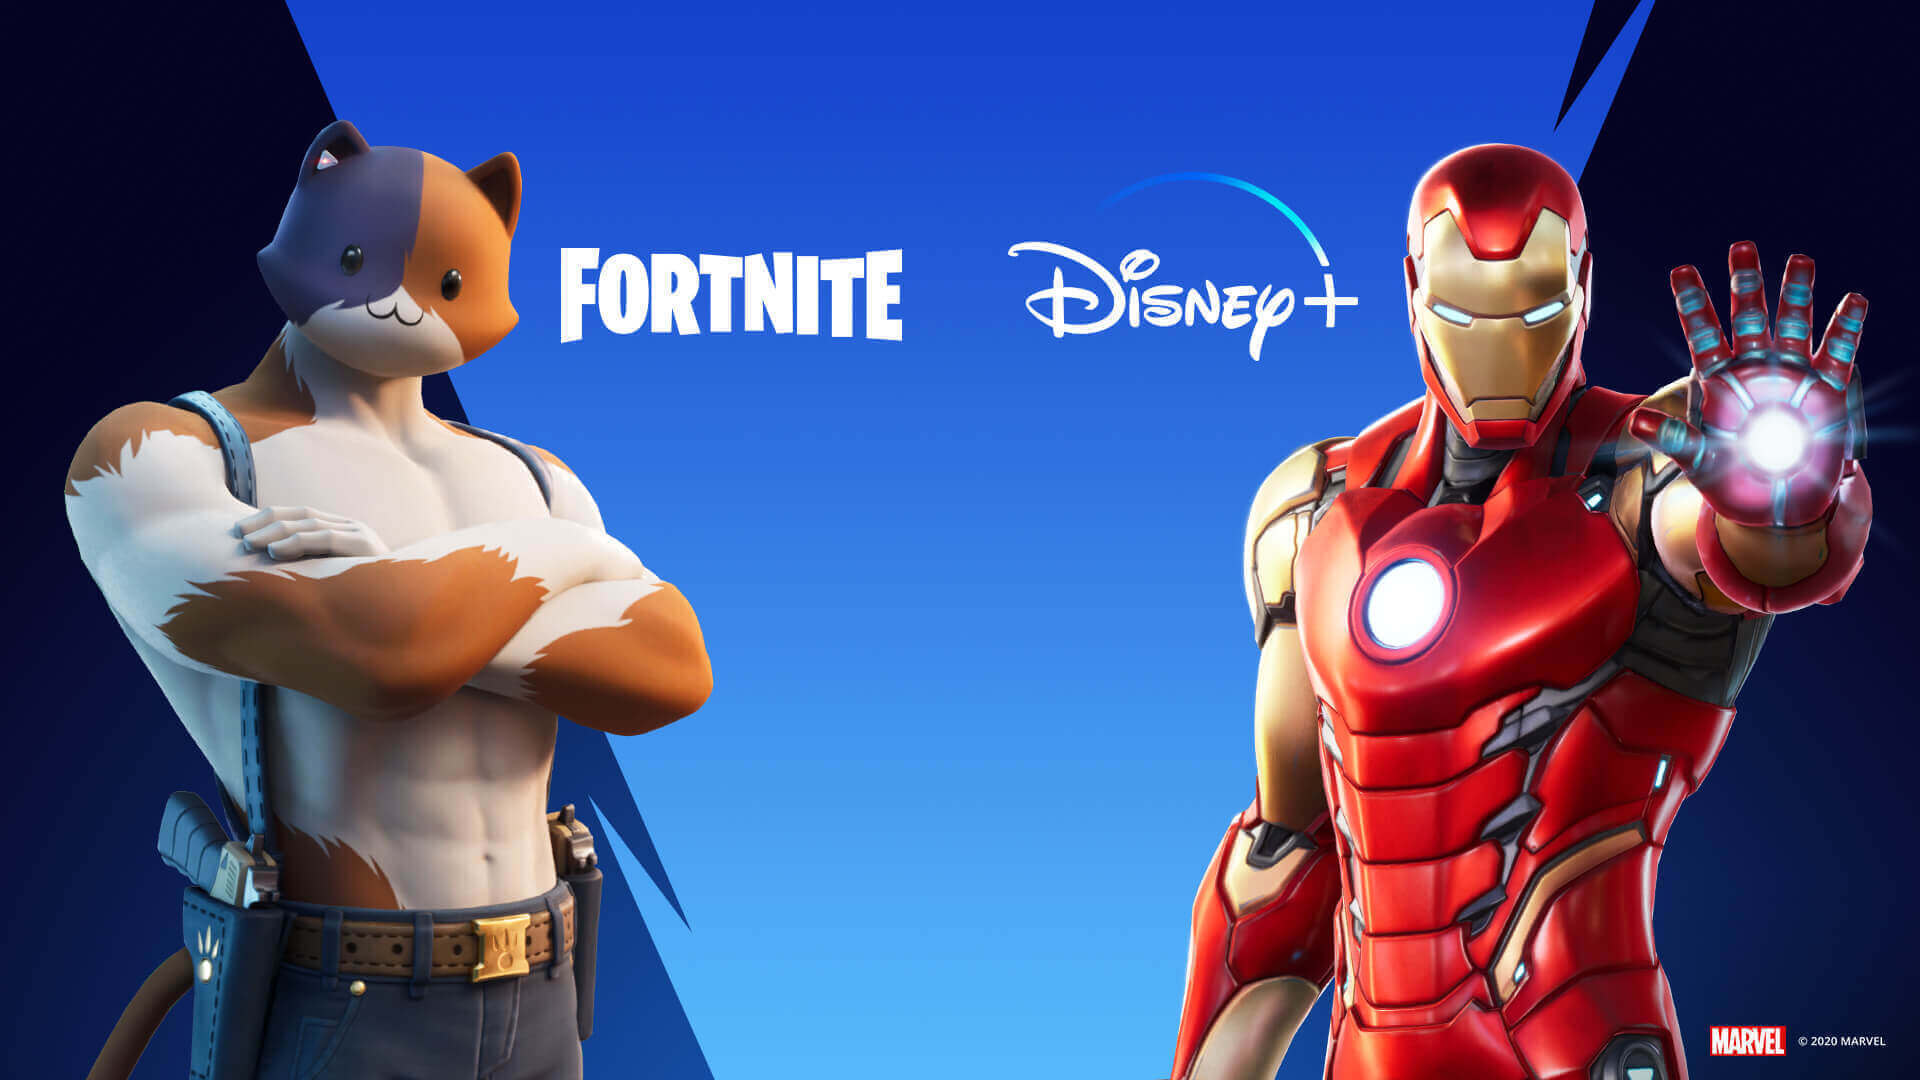 How to get free Disney+ access via Fortnite